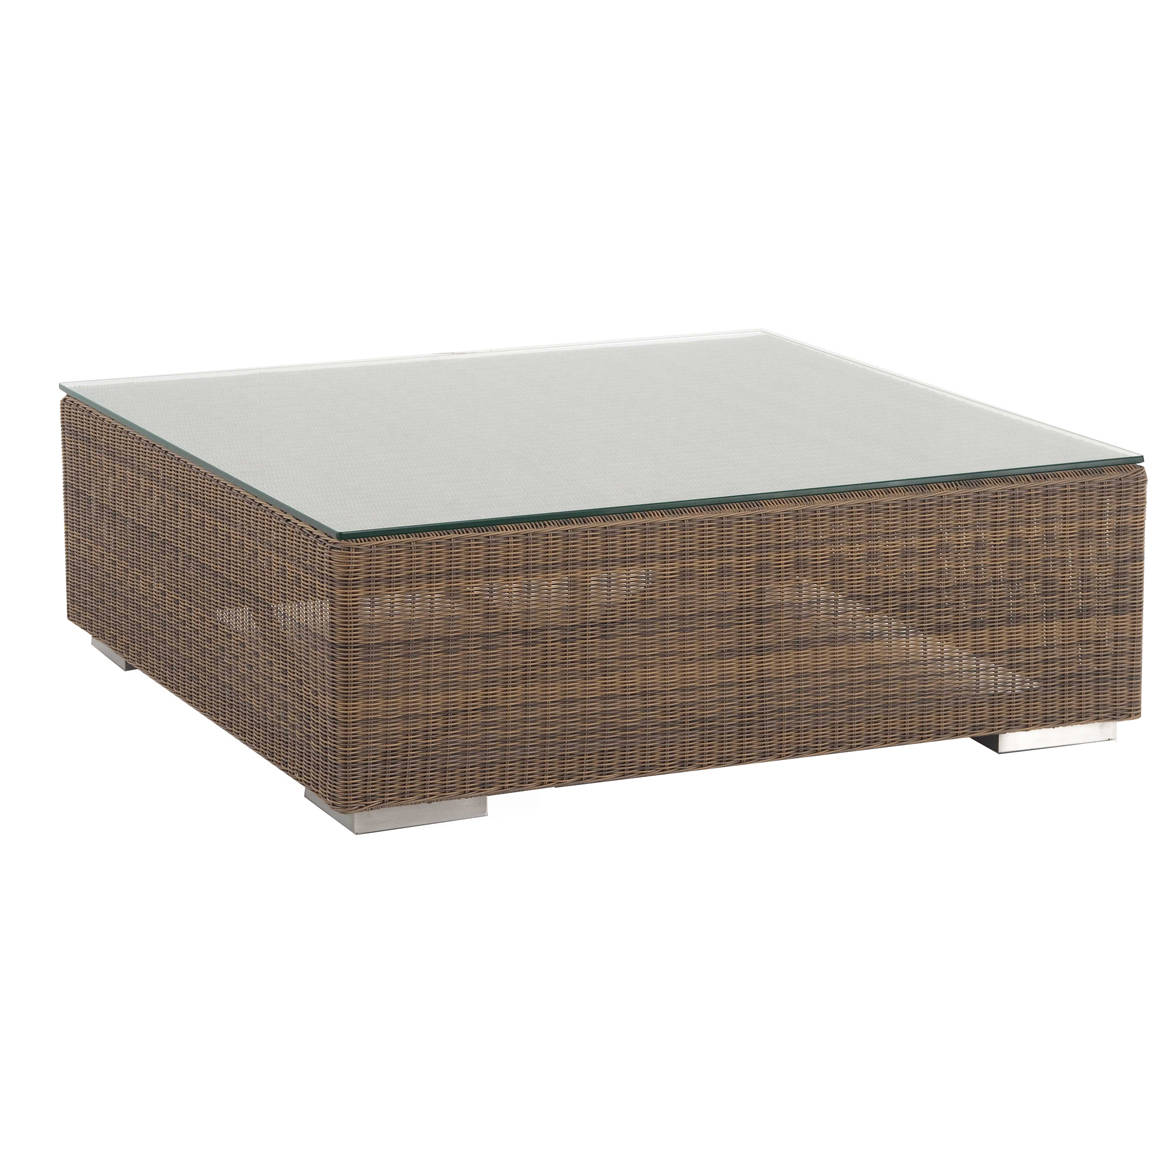 Teak Ottoman Coffee Table: Malaga Ottoman/Coffee Table